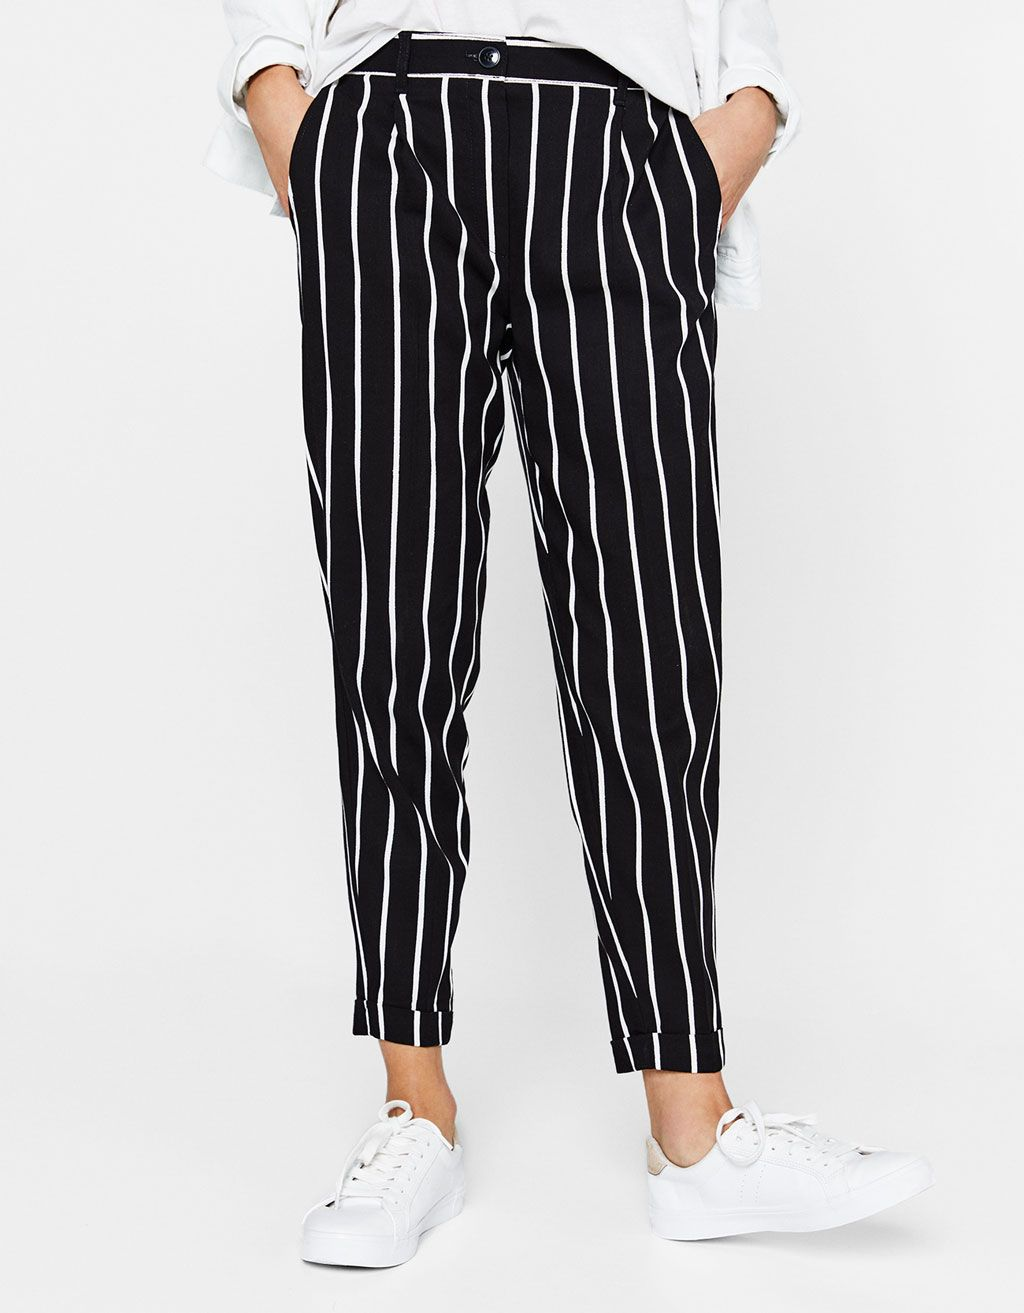 d30820149cb7d Tailored pleated jogging trousers. Discover this and many more items in  Bershka with new products every week